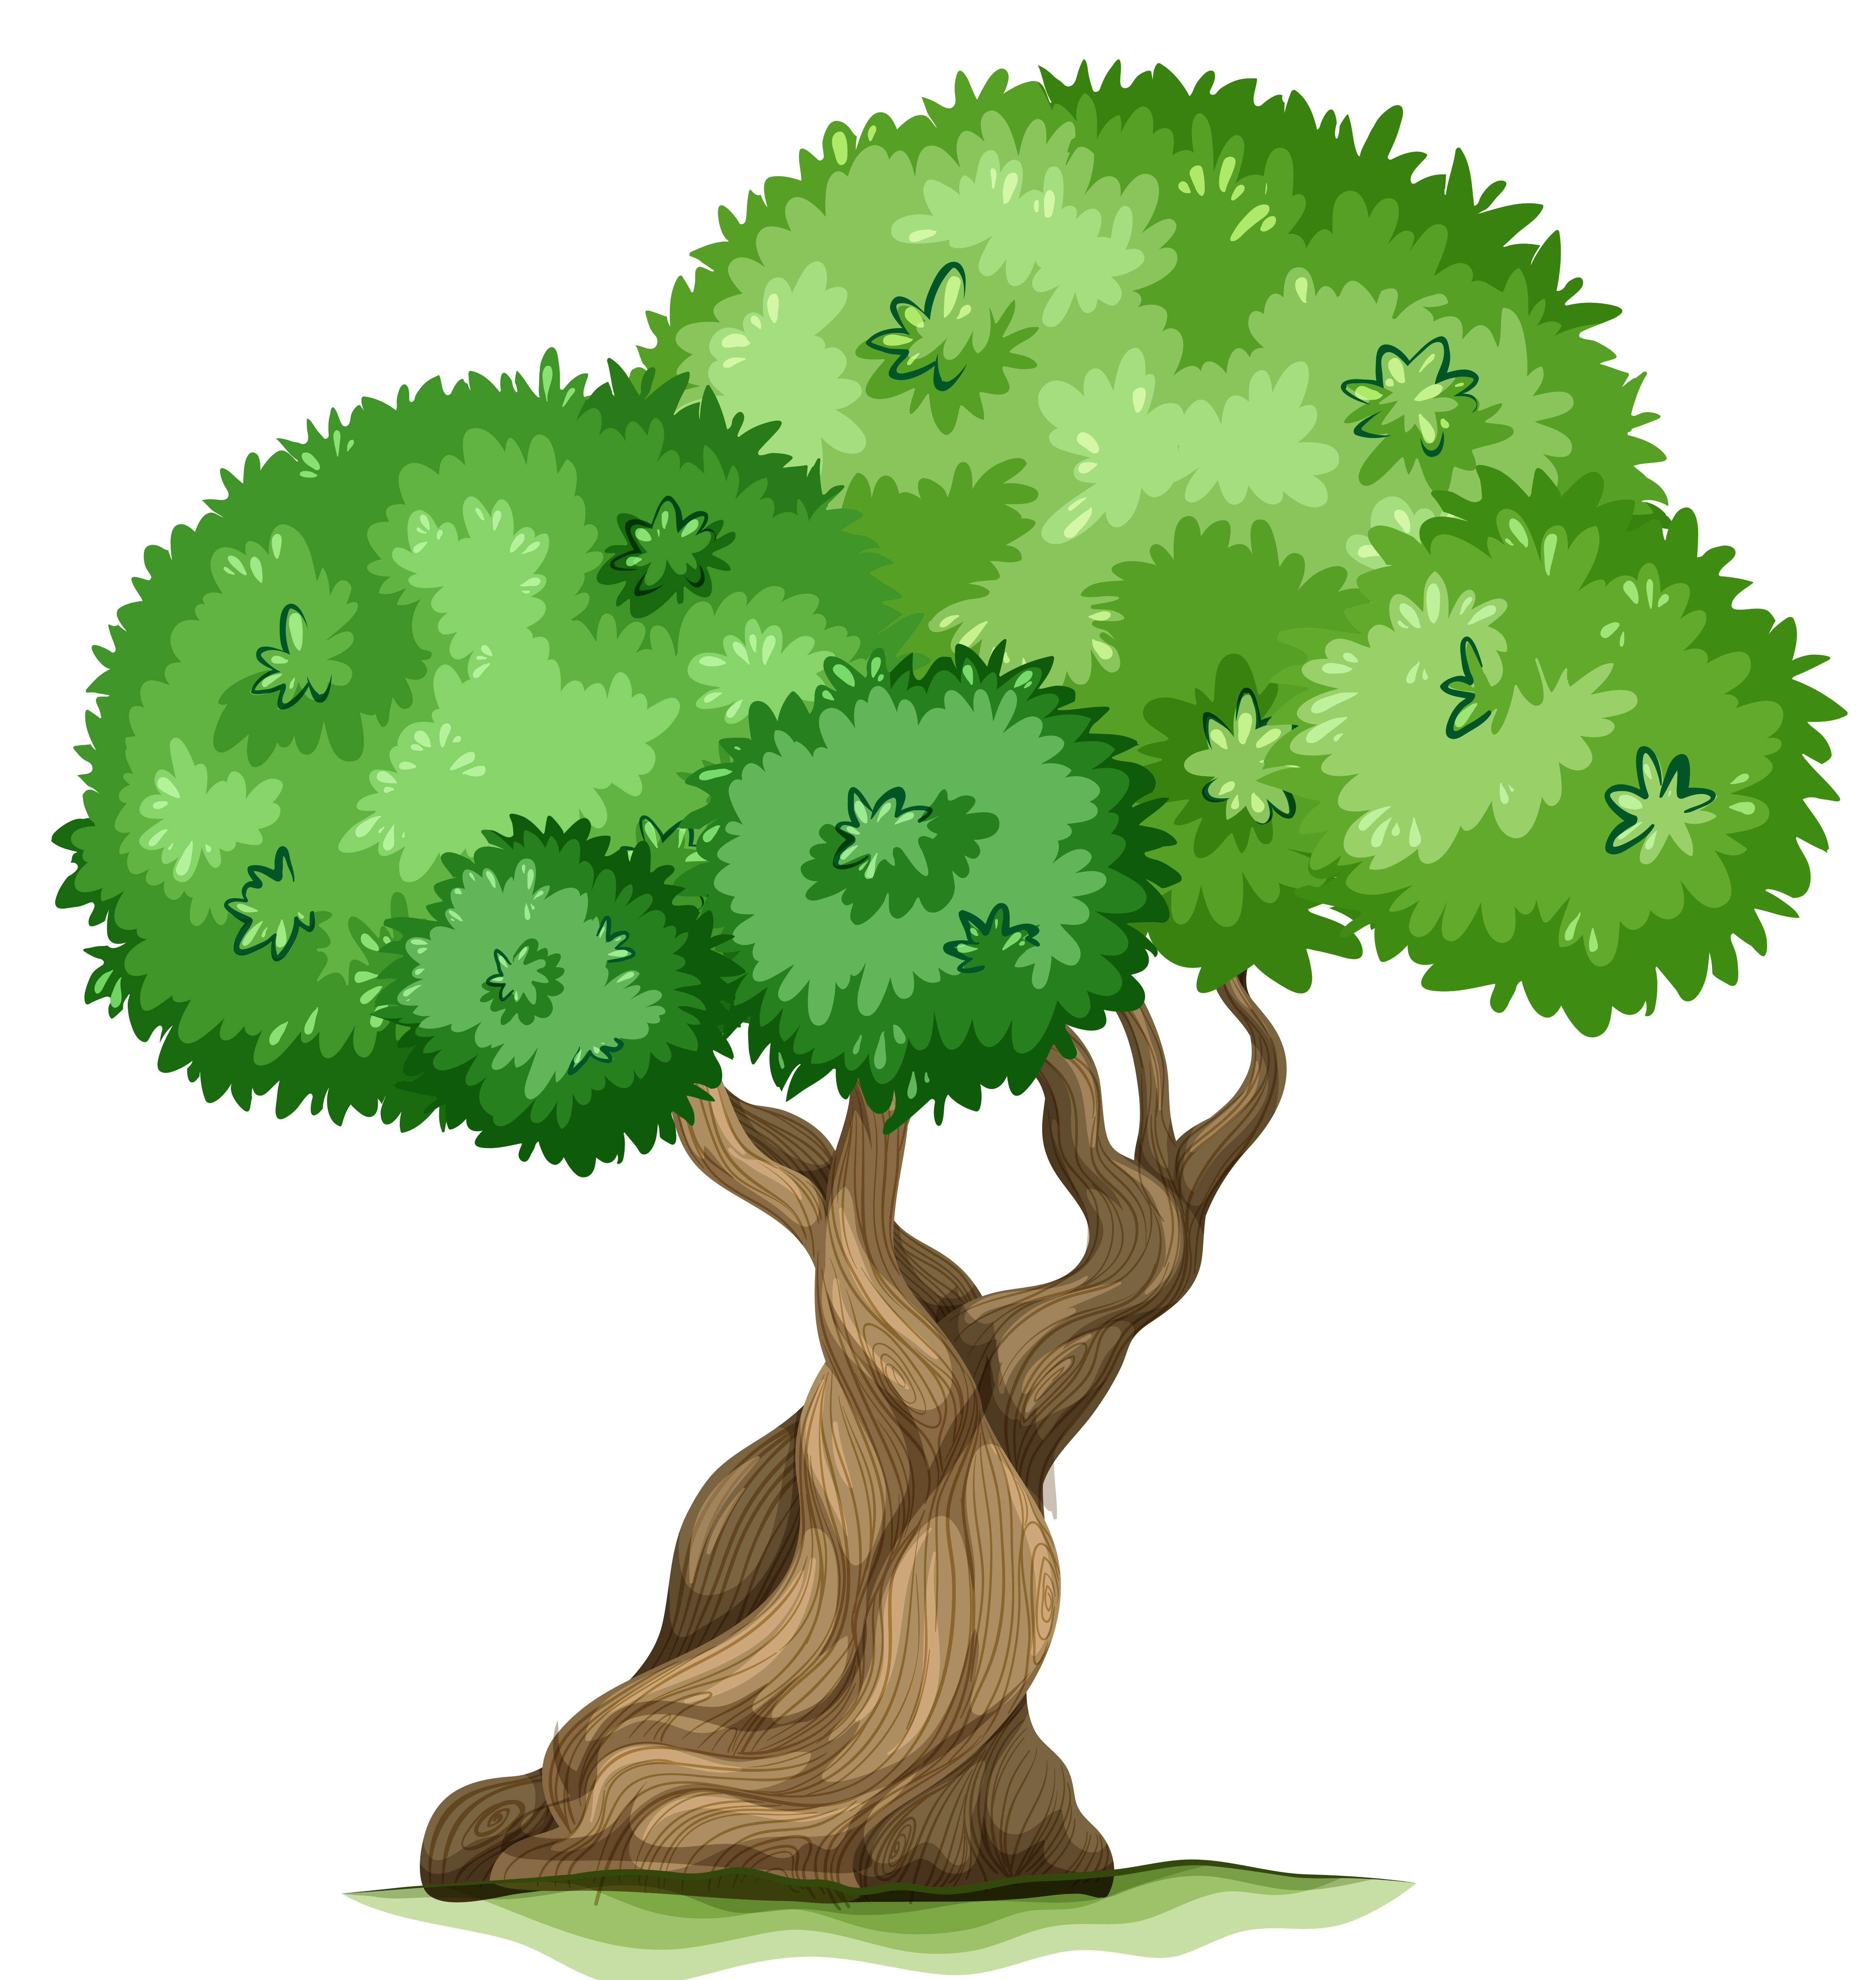 Cartoon Tree With Branches And Leaves